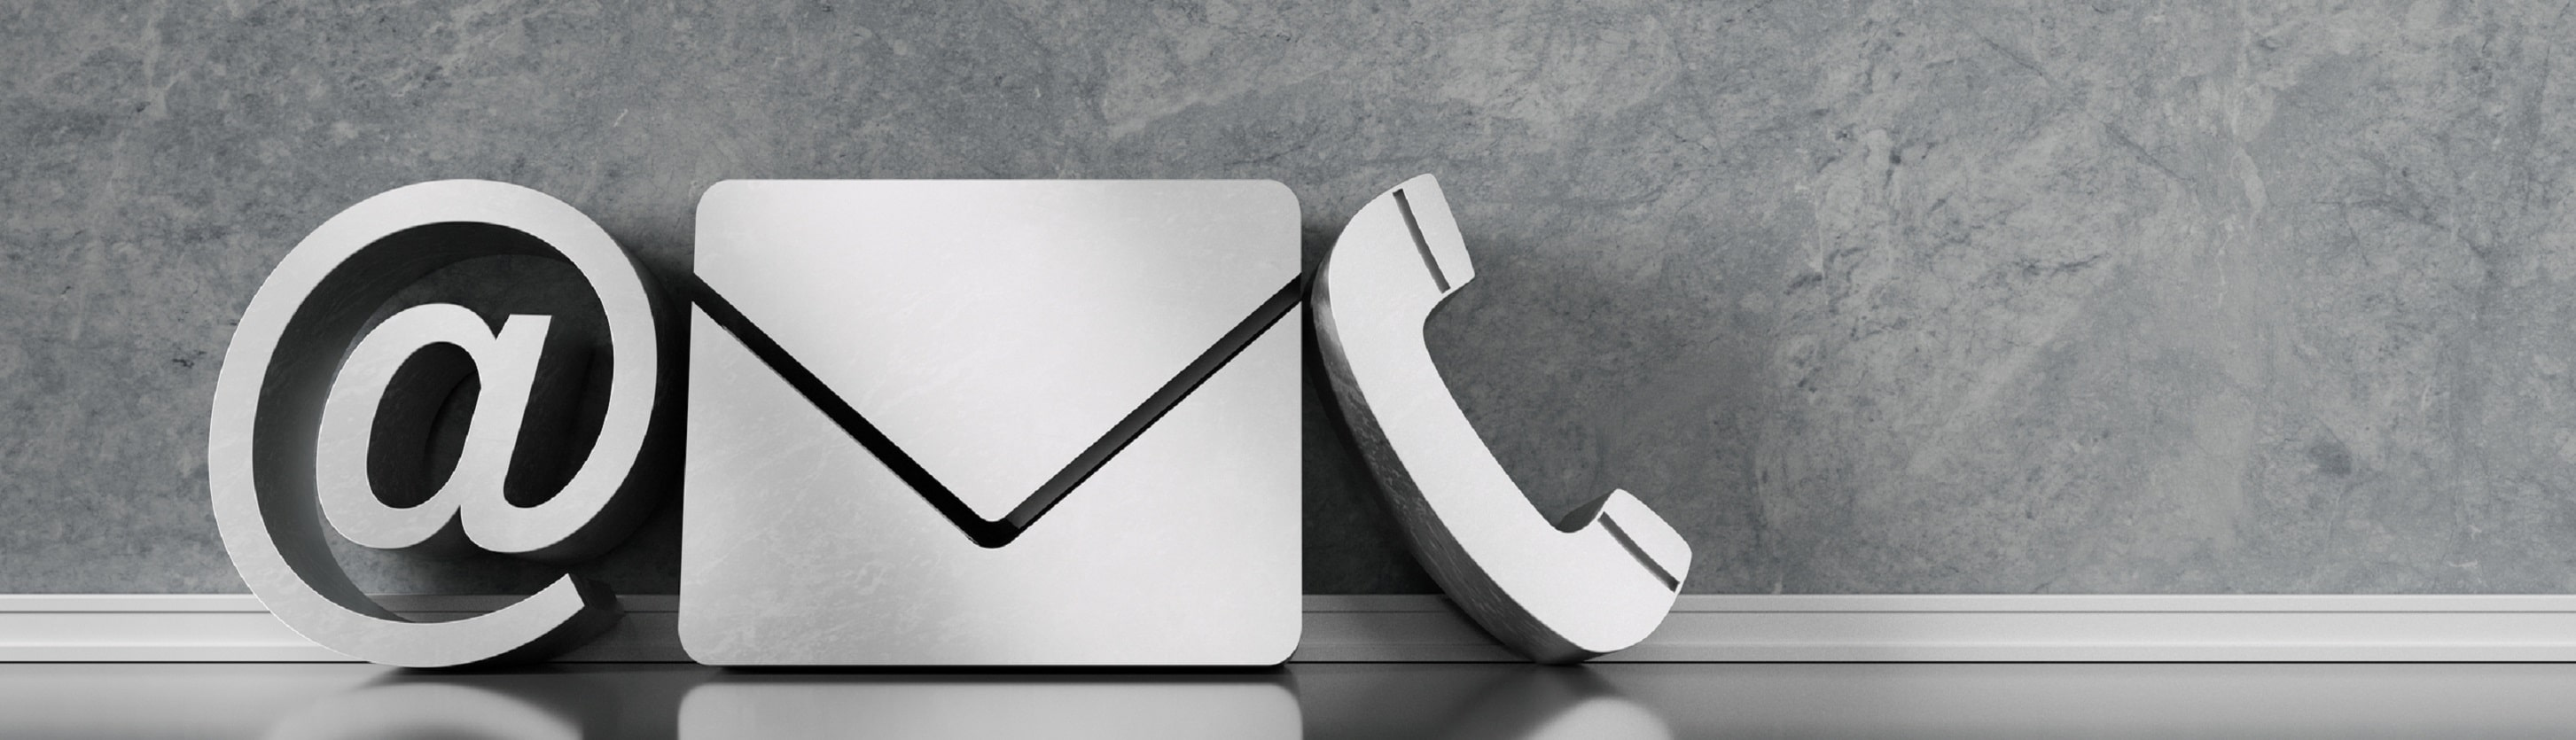 Communication symbols for phone, e-mail and letter standing on the floor against a wall.